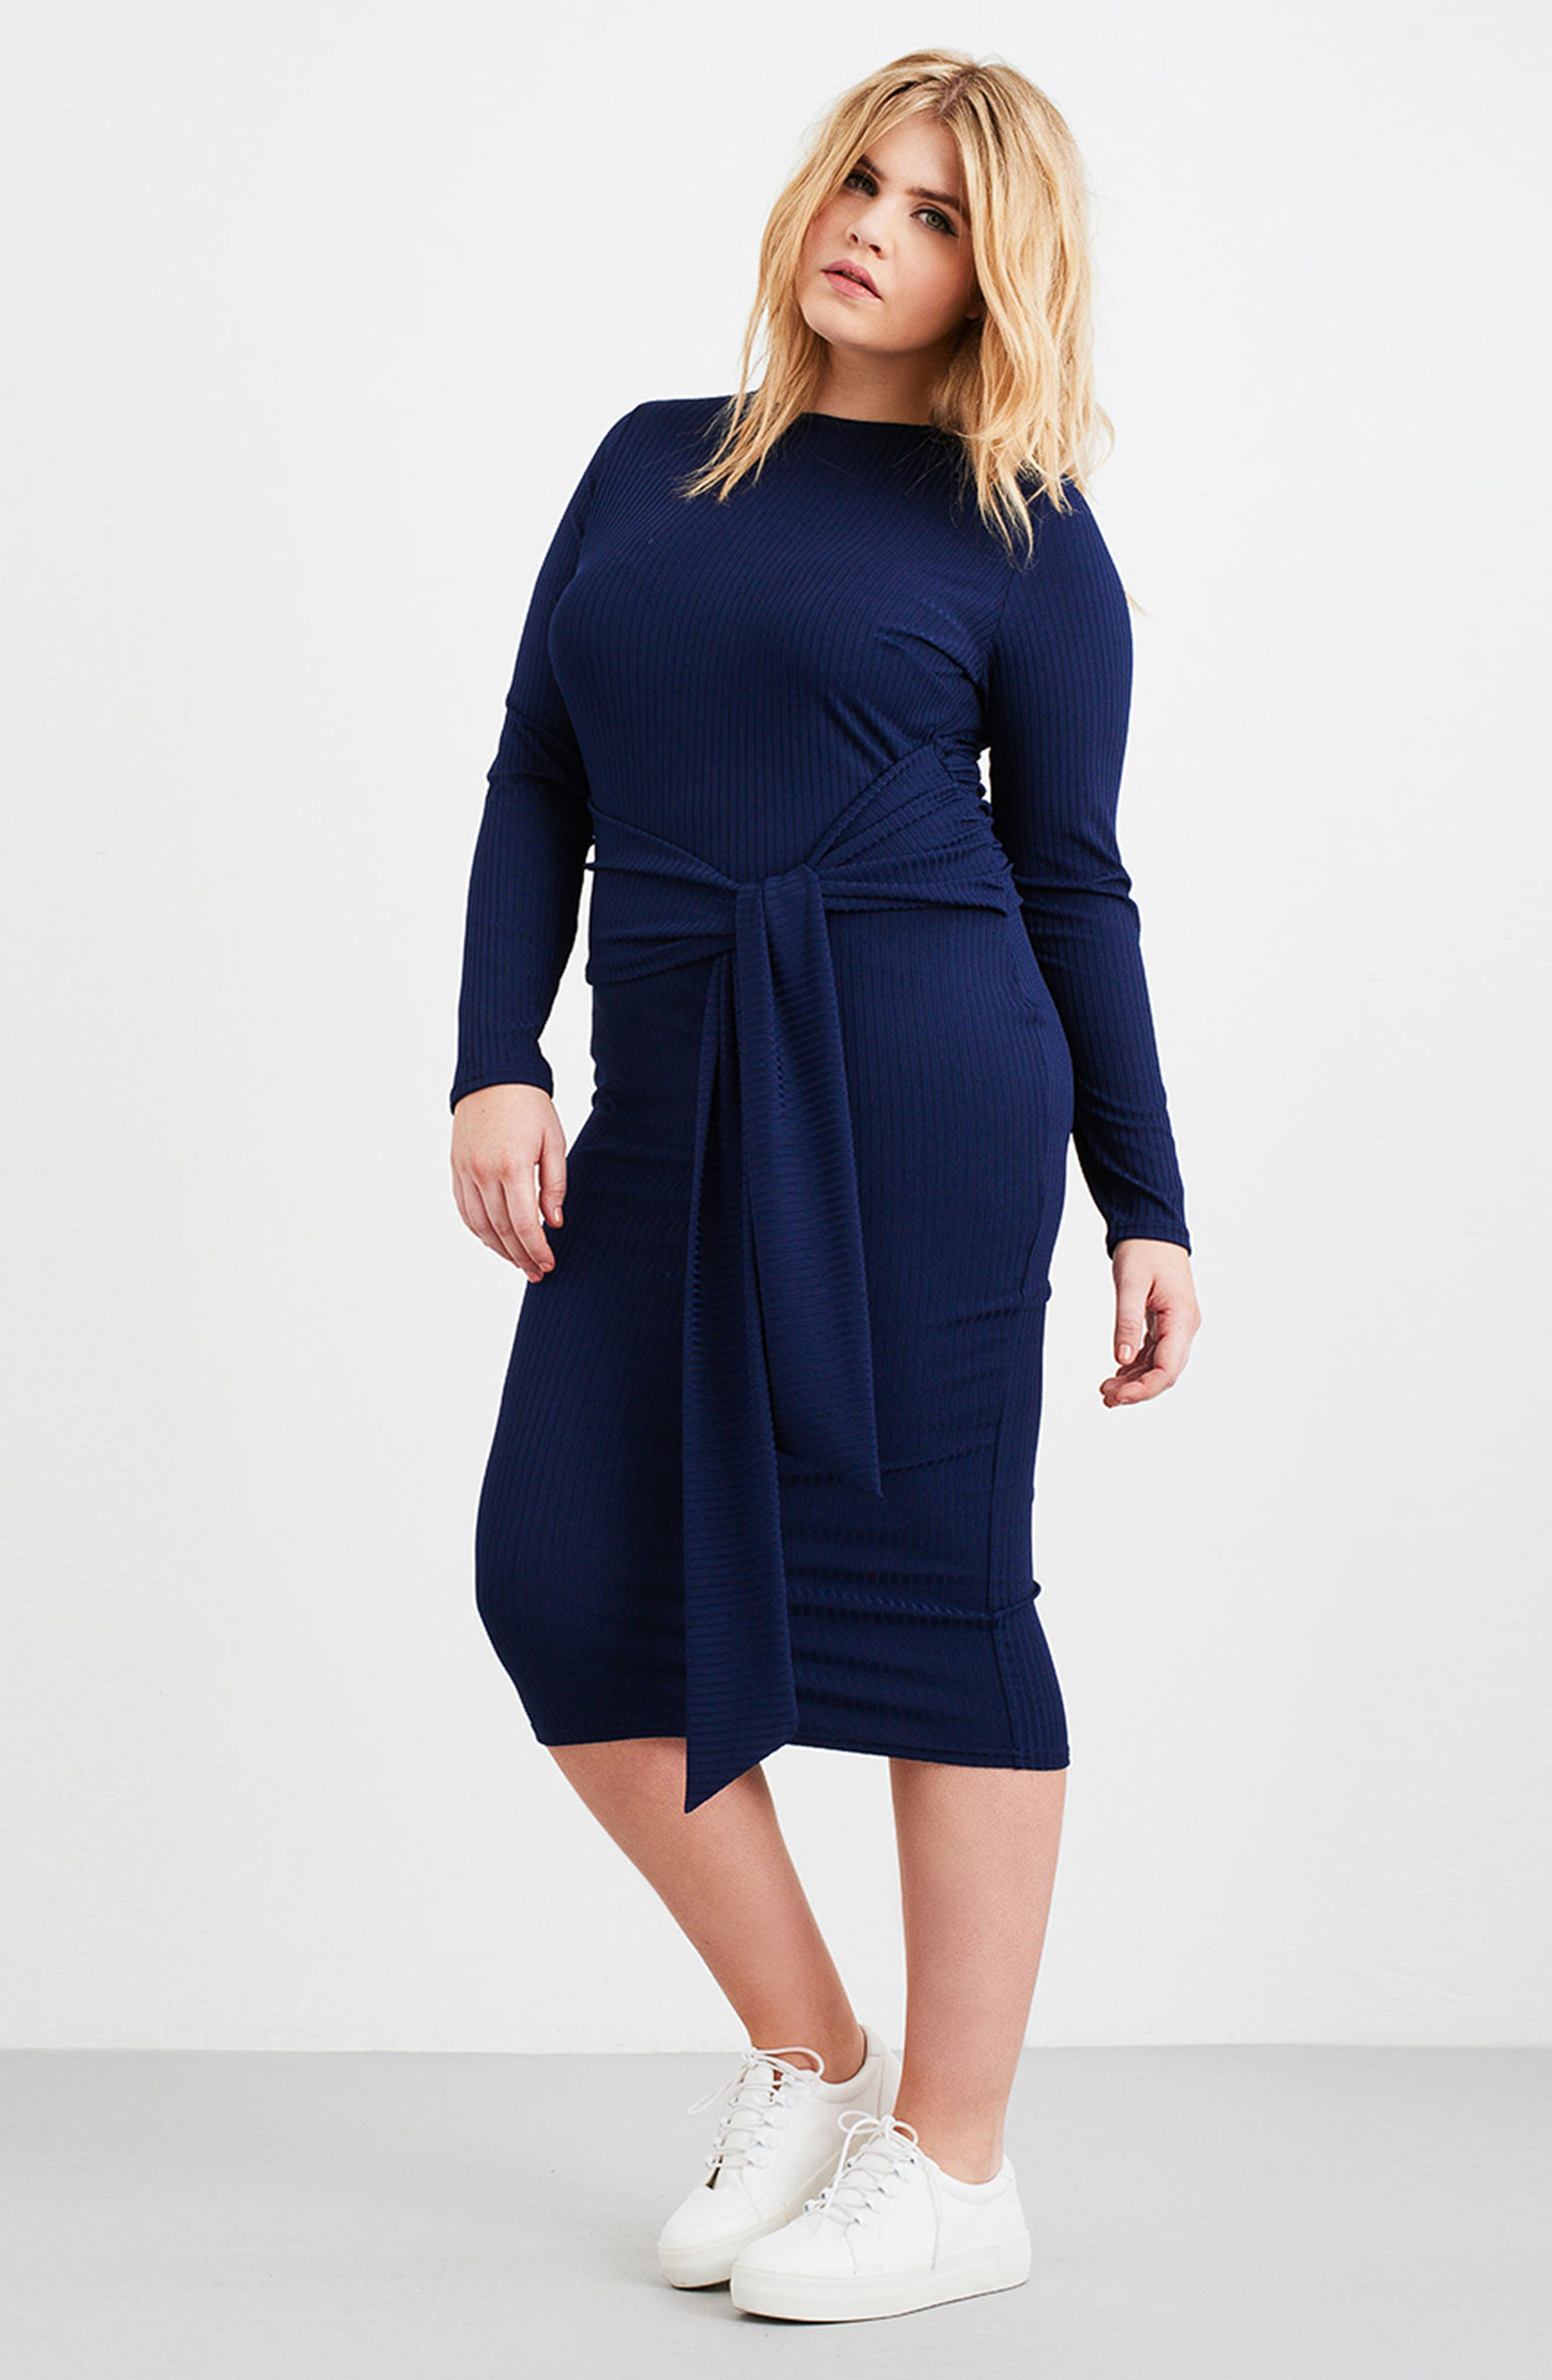 Tie Front Ribbed Sheath Dress,                             Alternate thumbnail 7, color,                             410